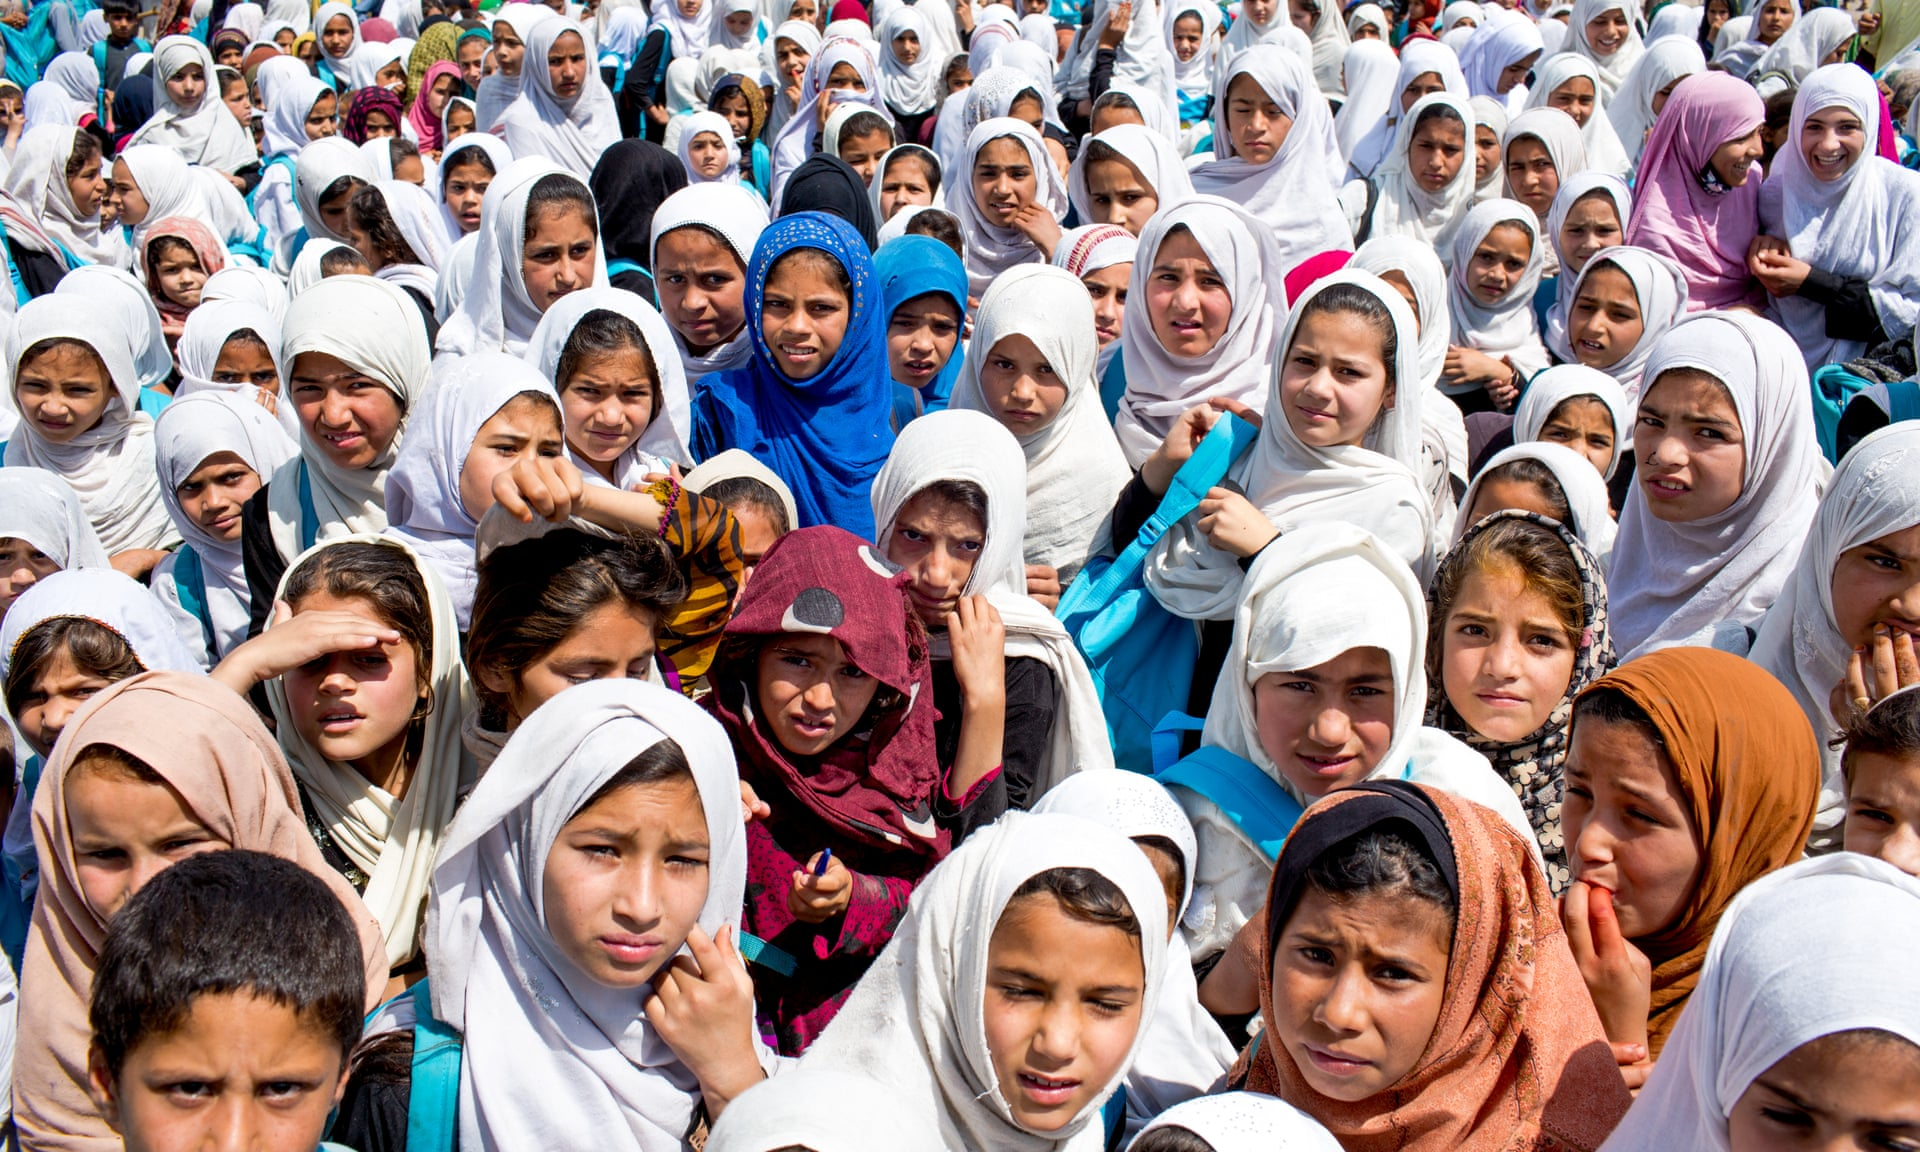 5760 - Attacks on Schools in Afghanistan Tripled in 2018, UN Agency